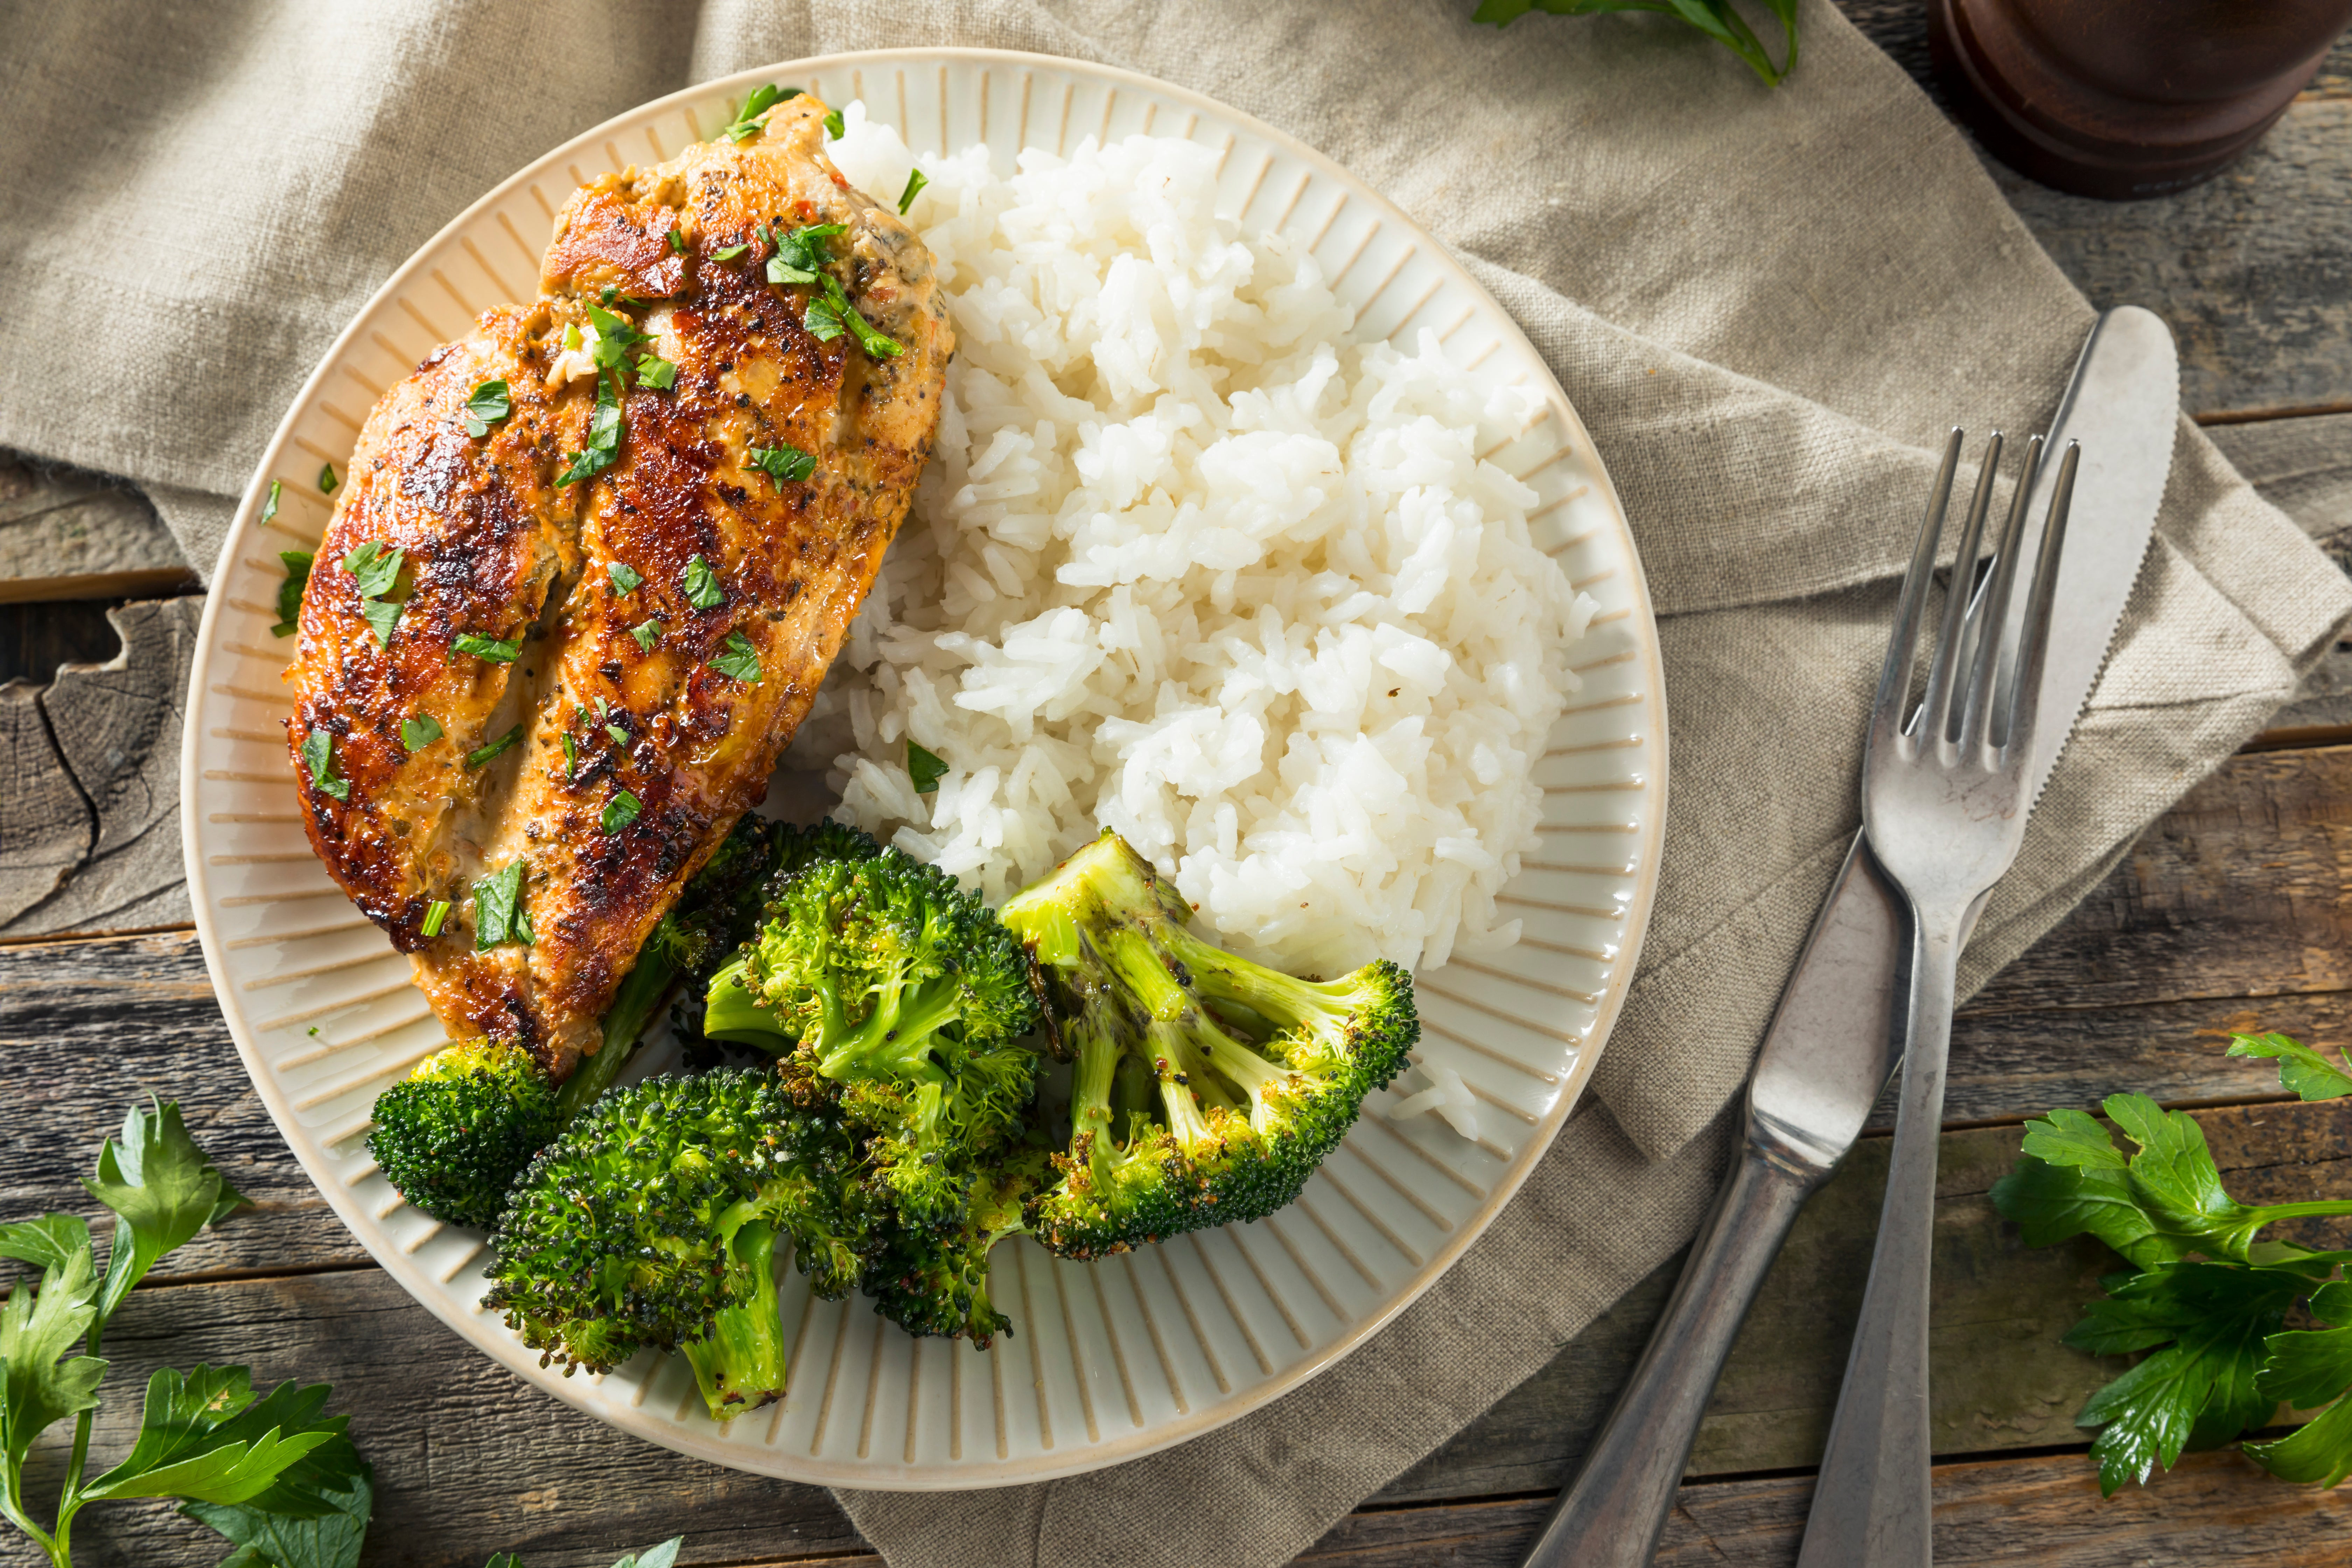 rice, chicken and broccoli